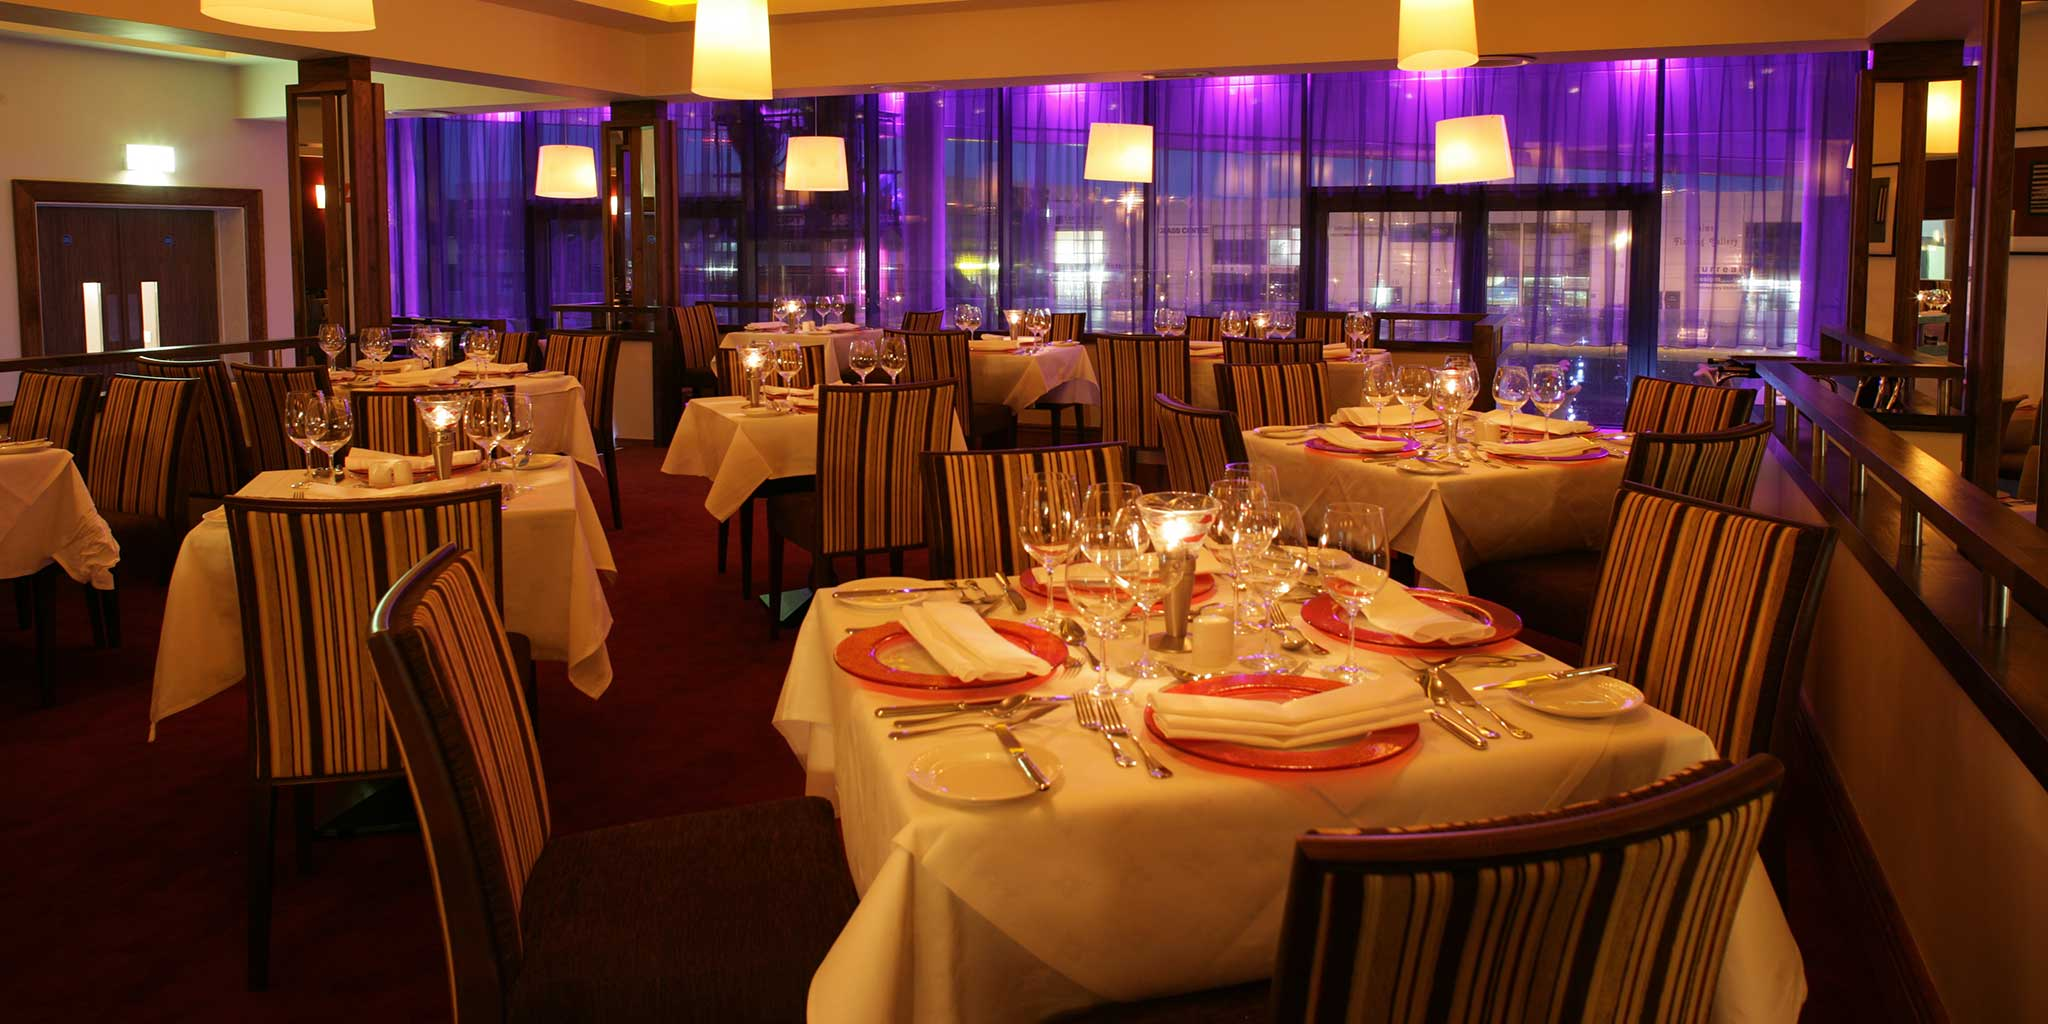 tribes-restaurant-at-the-clayton-hotel